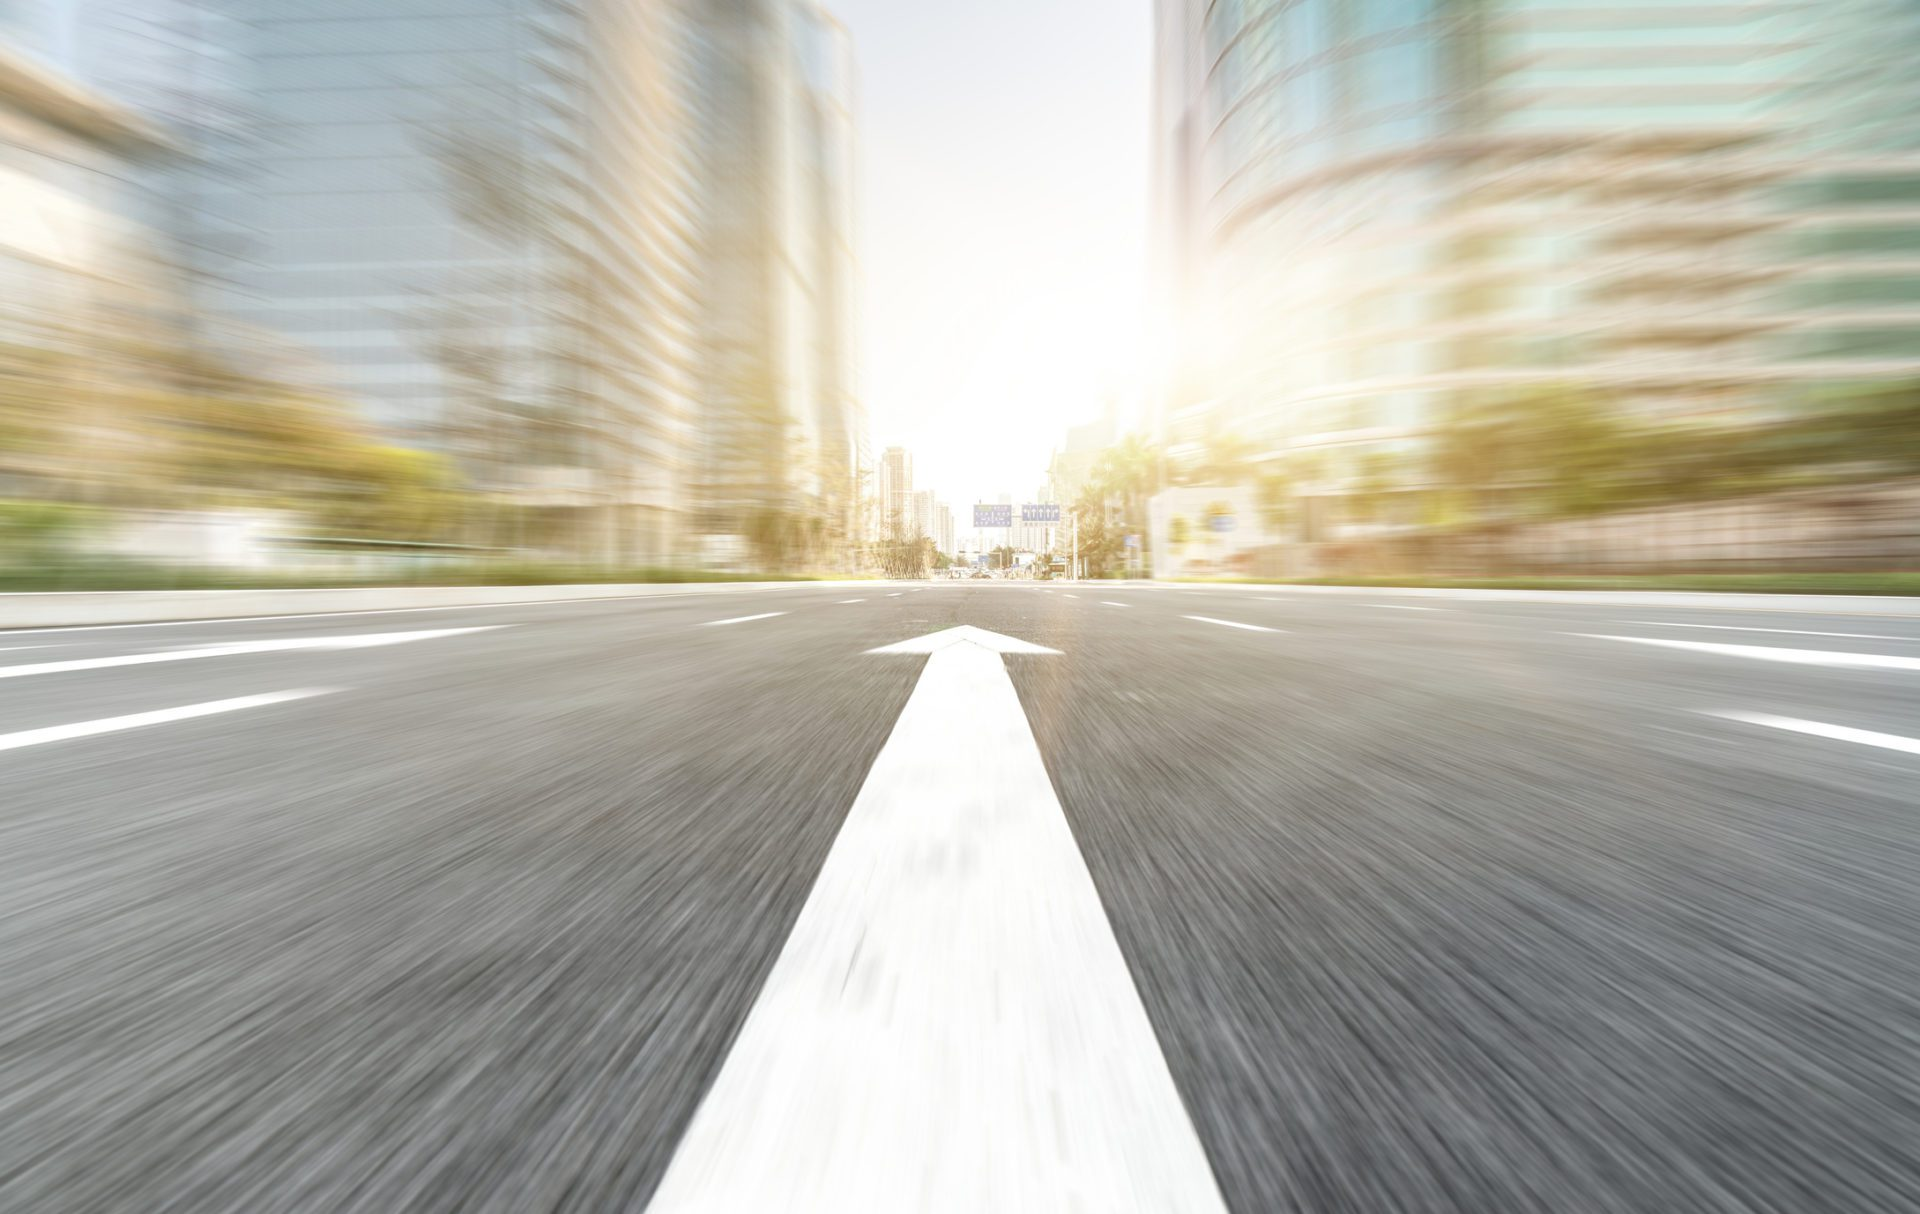 blurred highway as metaphor for delivering insights at speed of business decisions